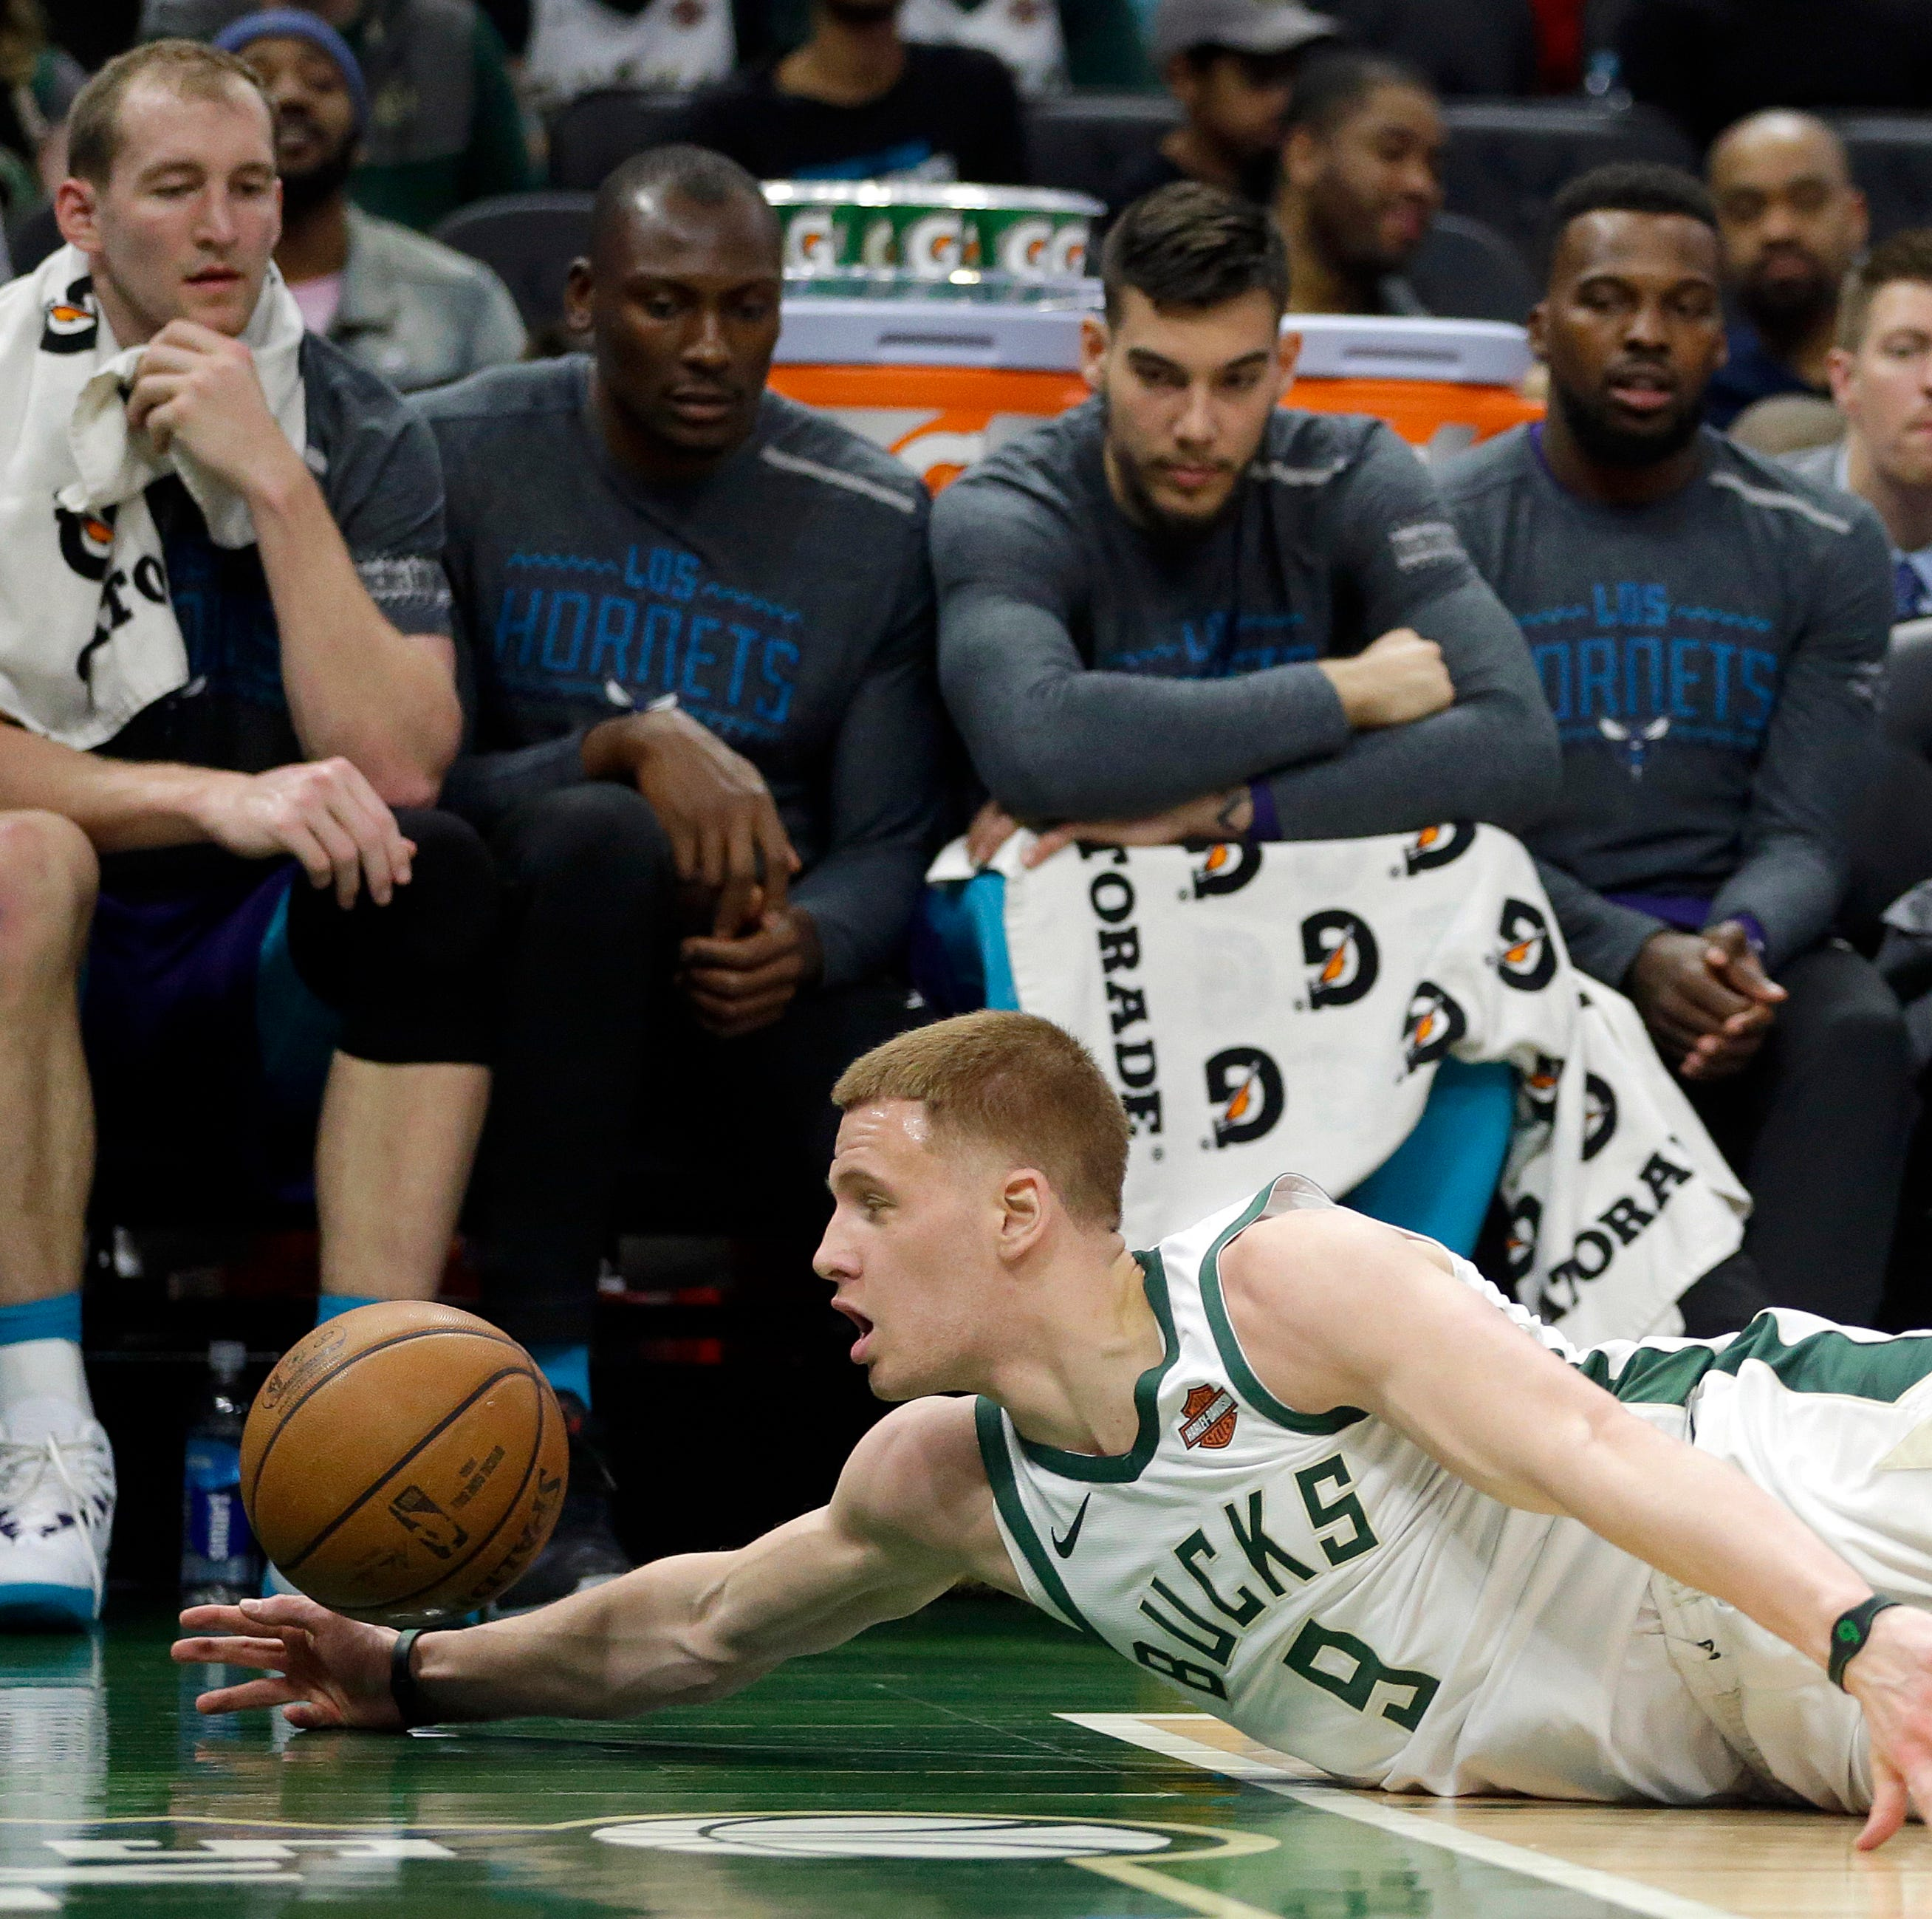 Delaware's Donte DiVincenzo learning about NBA, dealing with injury in homecoming vs. 76ers